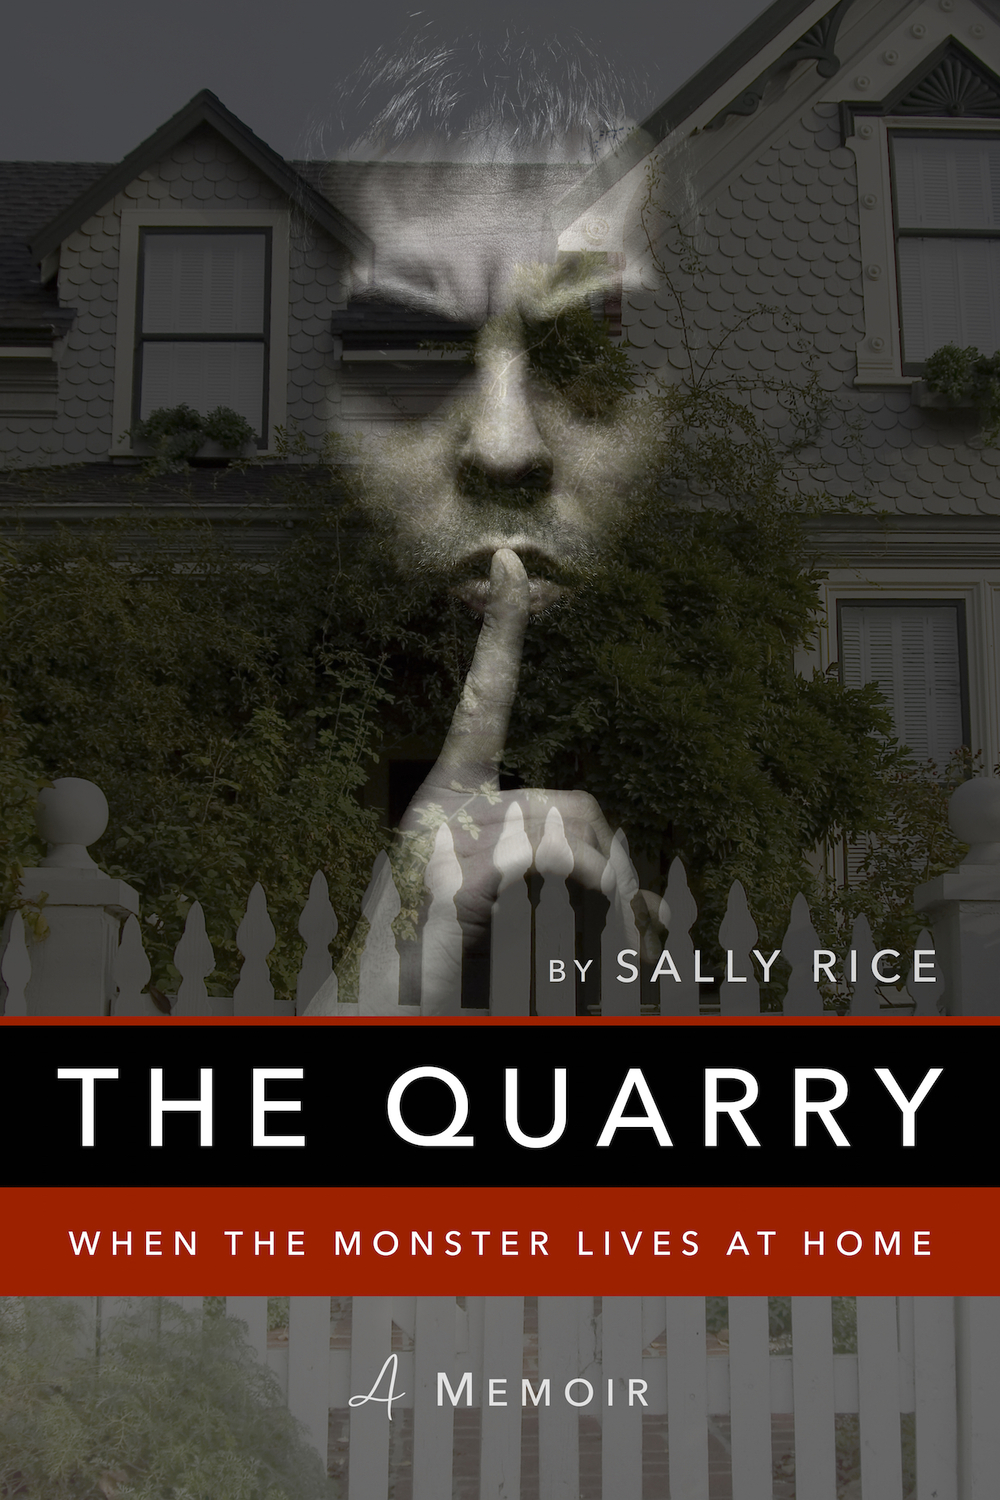 THE QUARRY - FrontCover - Final copy.jpg